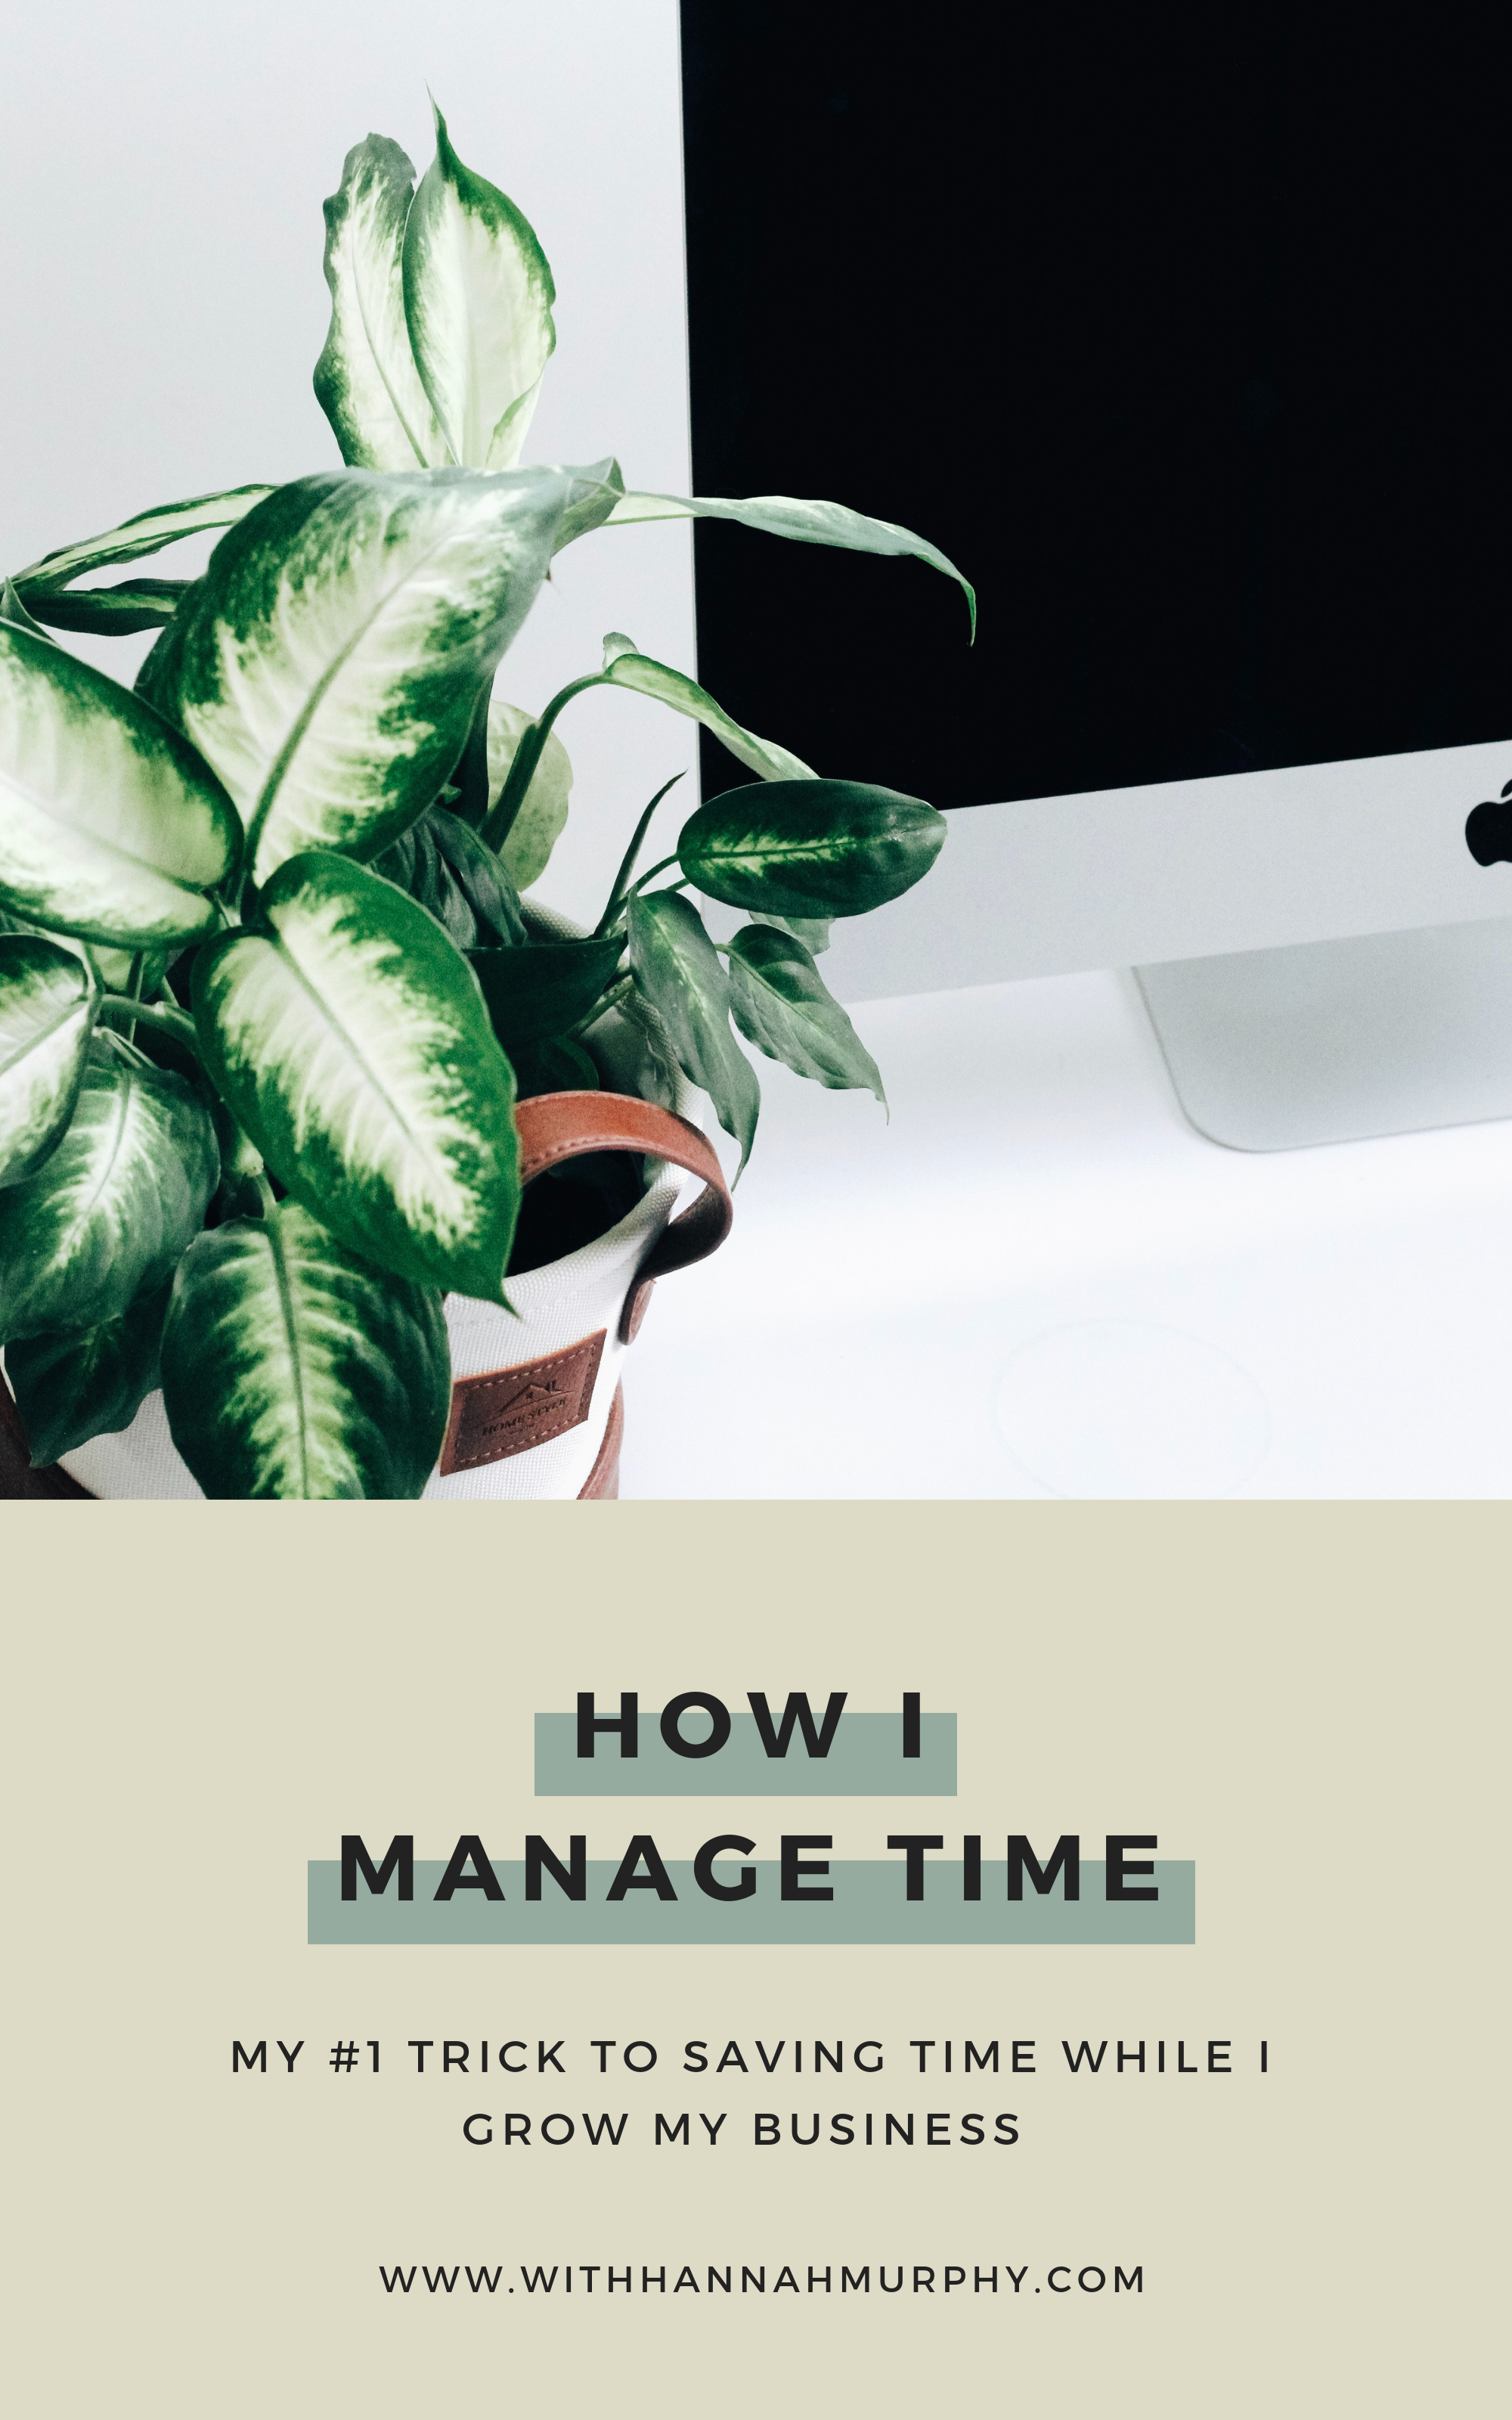 Wanting to save time in your work week so you can focus on growing your business and gaining clients? This simple trick has saved me HOURS (and possibly even days, let's be honest)